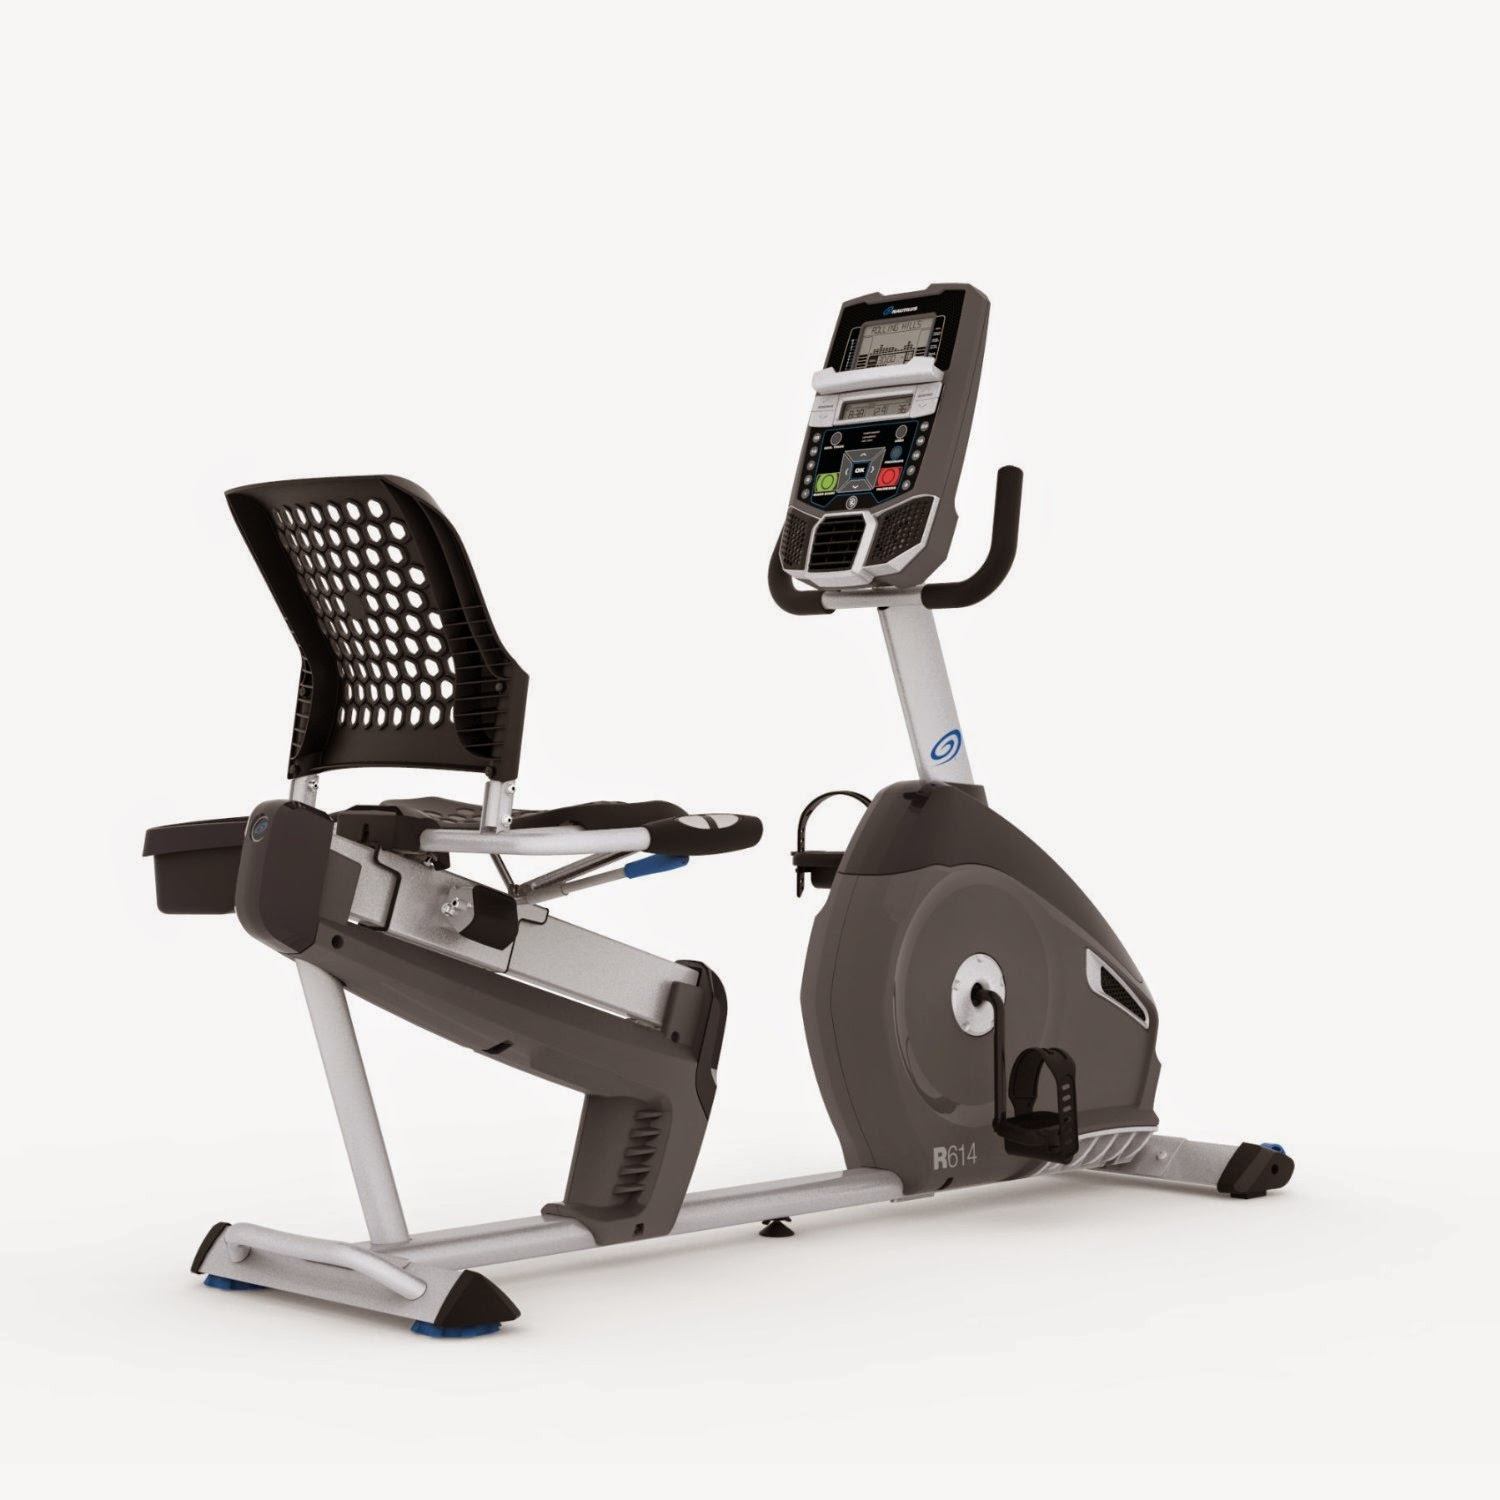 Nautilus R614 Recumbent Exercise Bike, picture, image, review features & specifications, compare with Nautilus R616